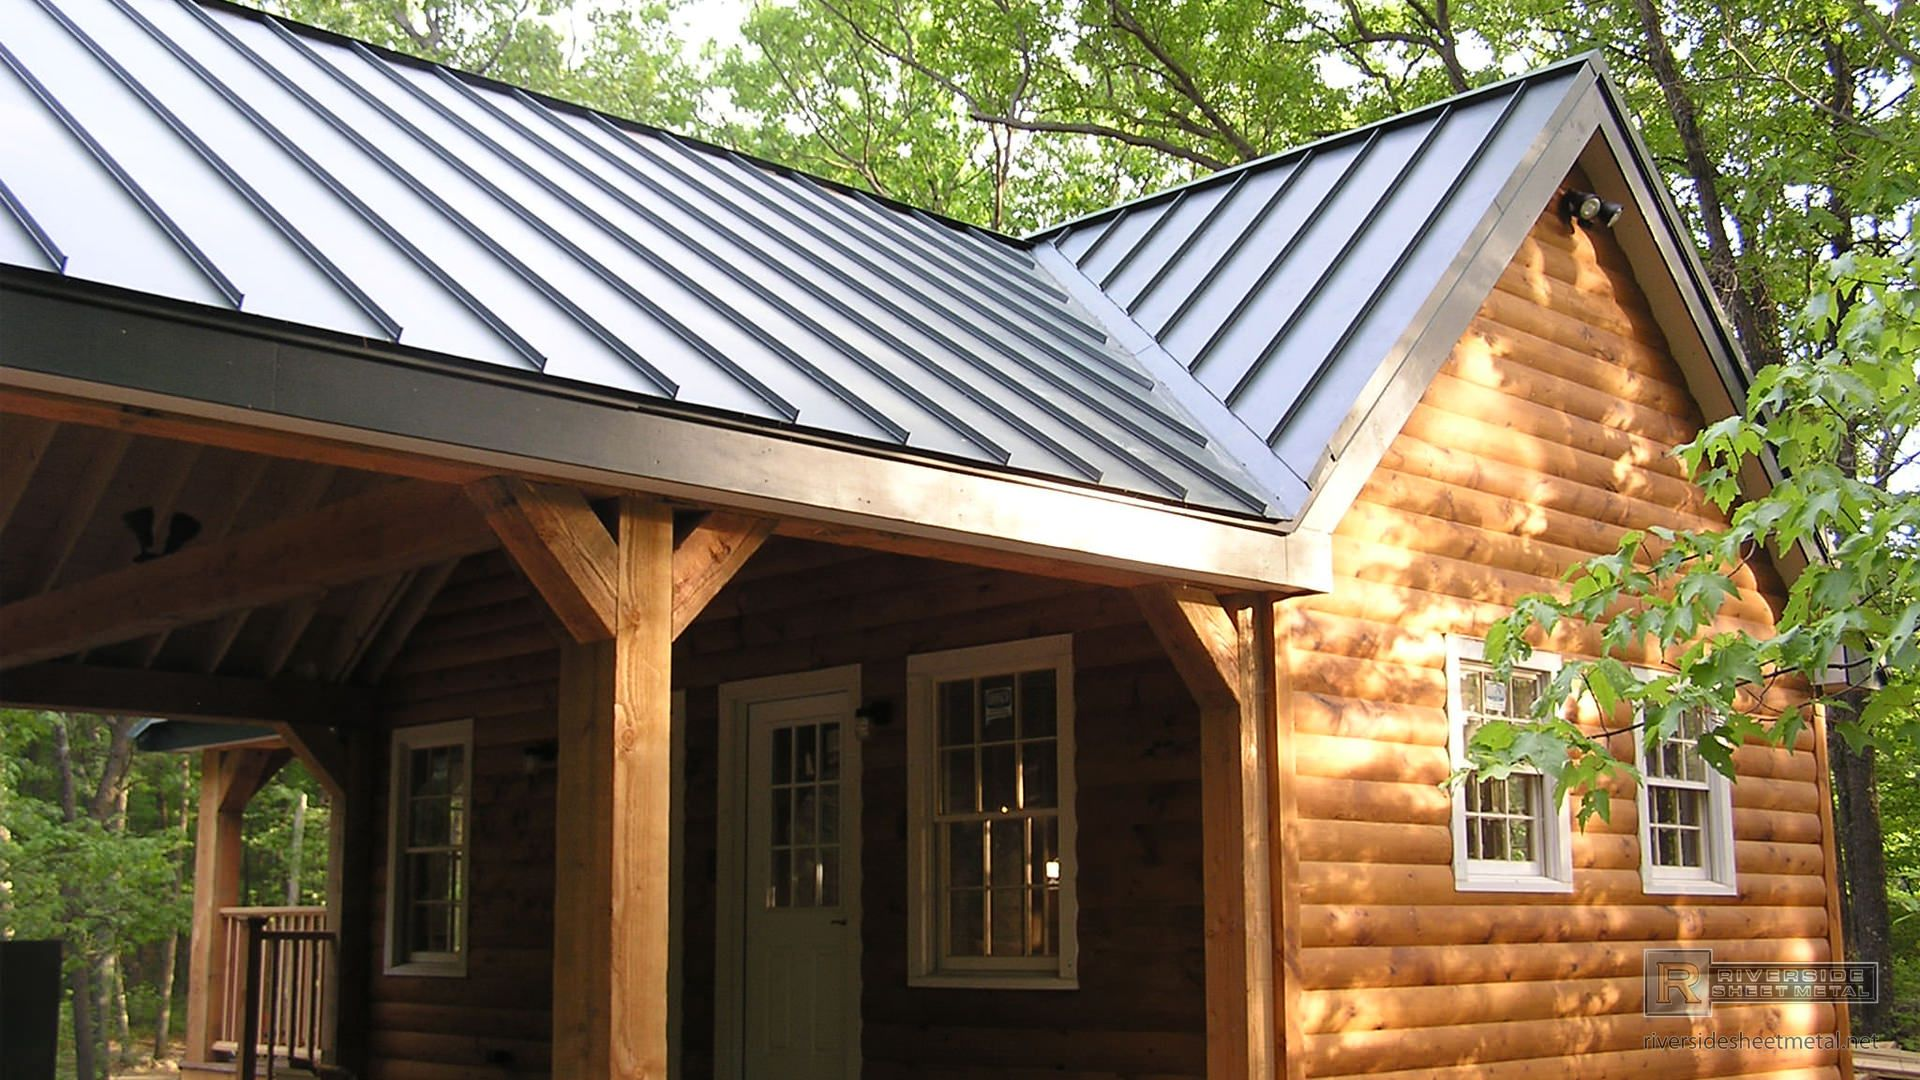 Sheet Metal Roofing Exposed To The Harshest Outdoor Elements Year Round, Is  Usually Hot Dipped Or Electroplated.